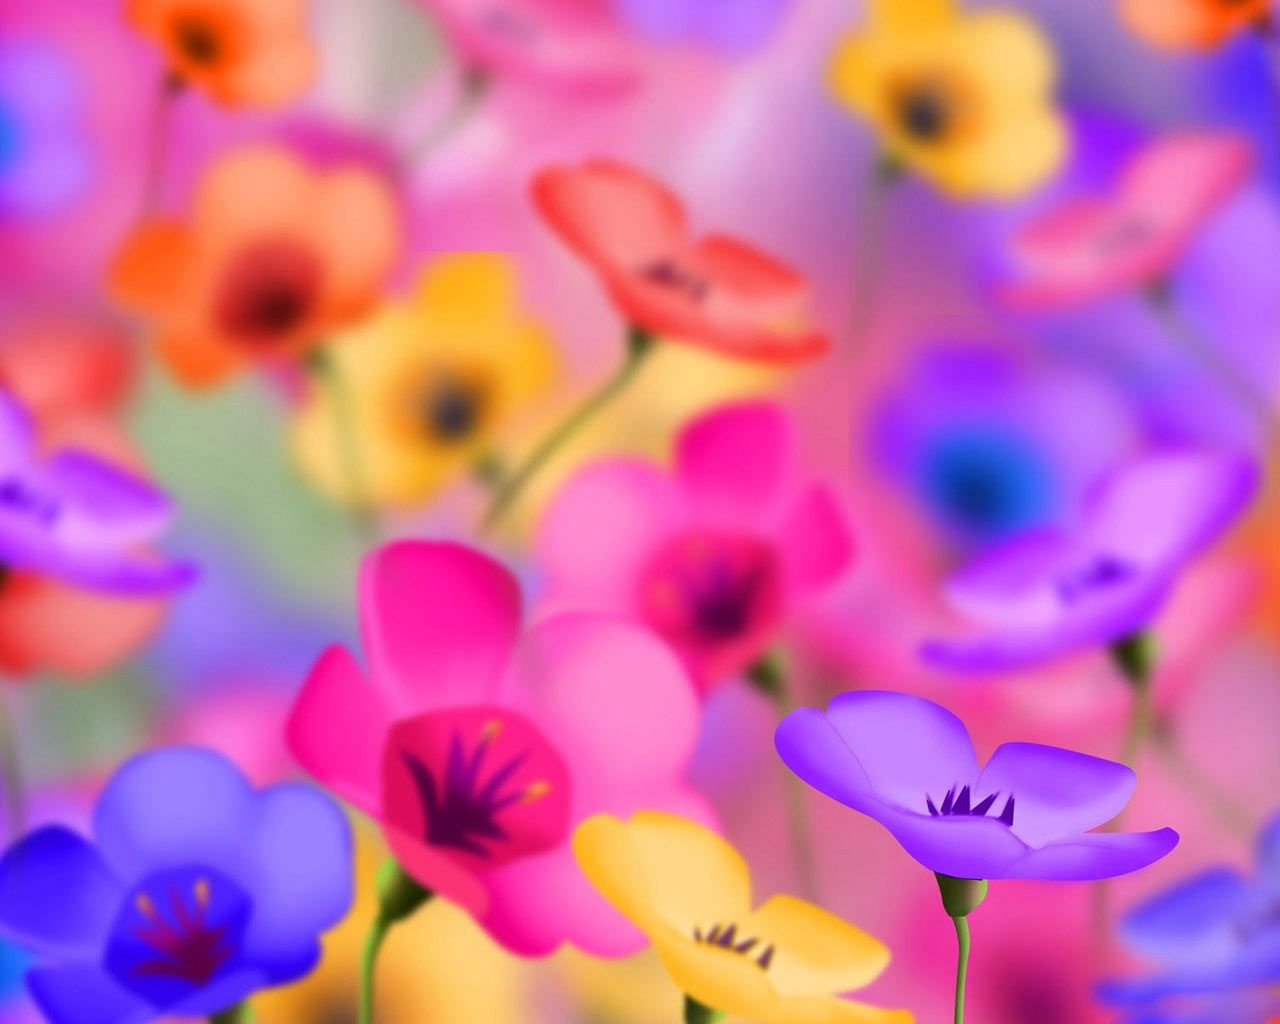 Background wallpaper flowers clipart free download Flowers For Desktop Backgrounds - Wallpaper Cave clipart free download